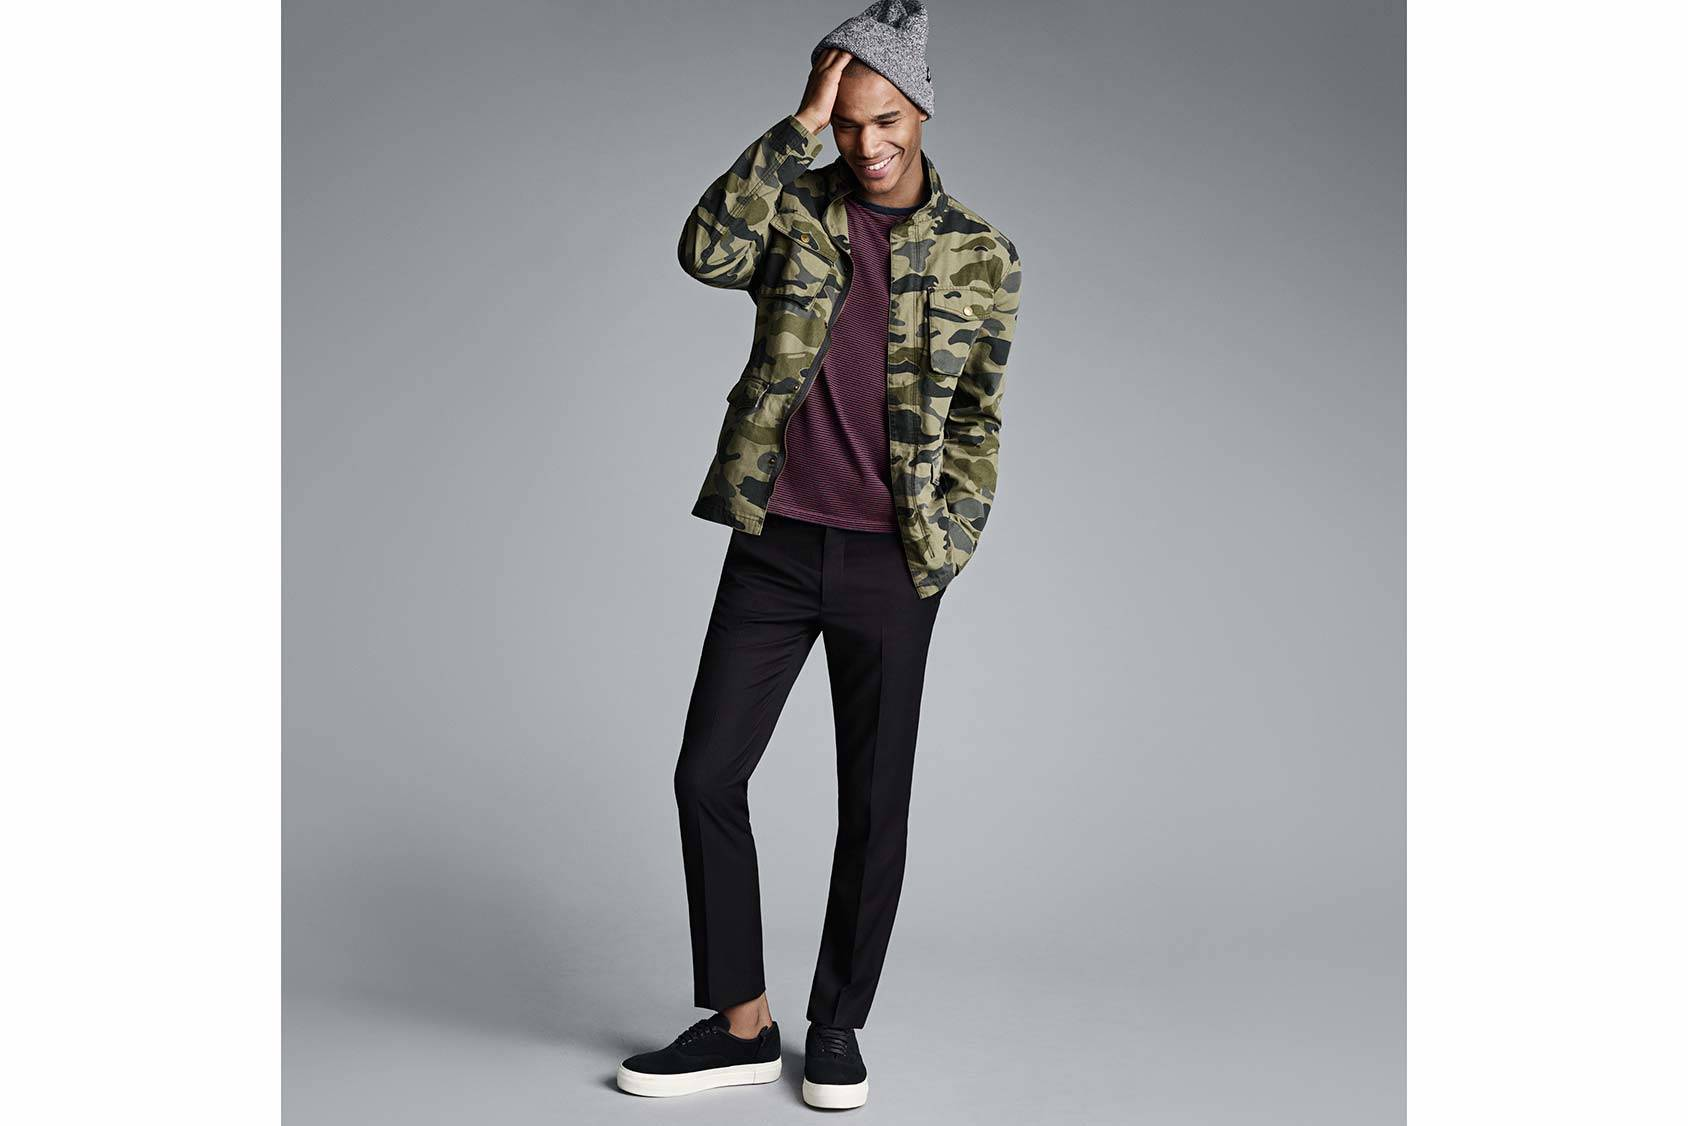 Model Sacha M'Baye in H&M's field jacket.